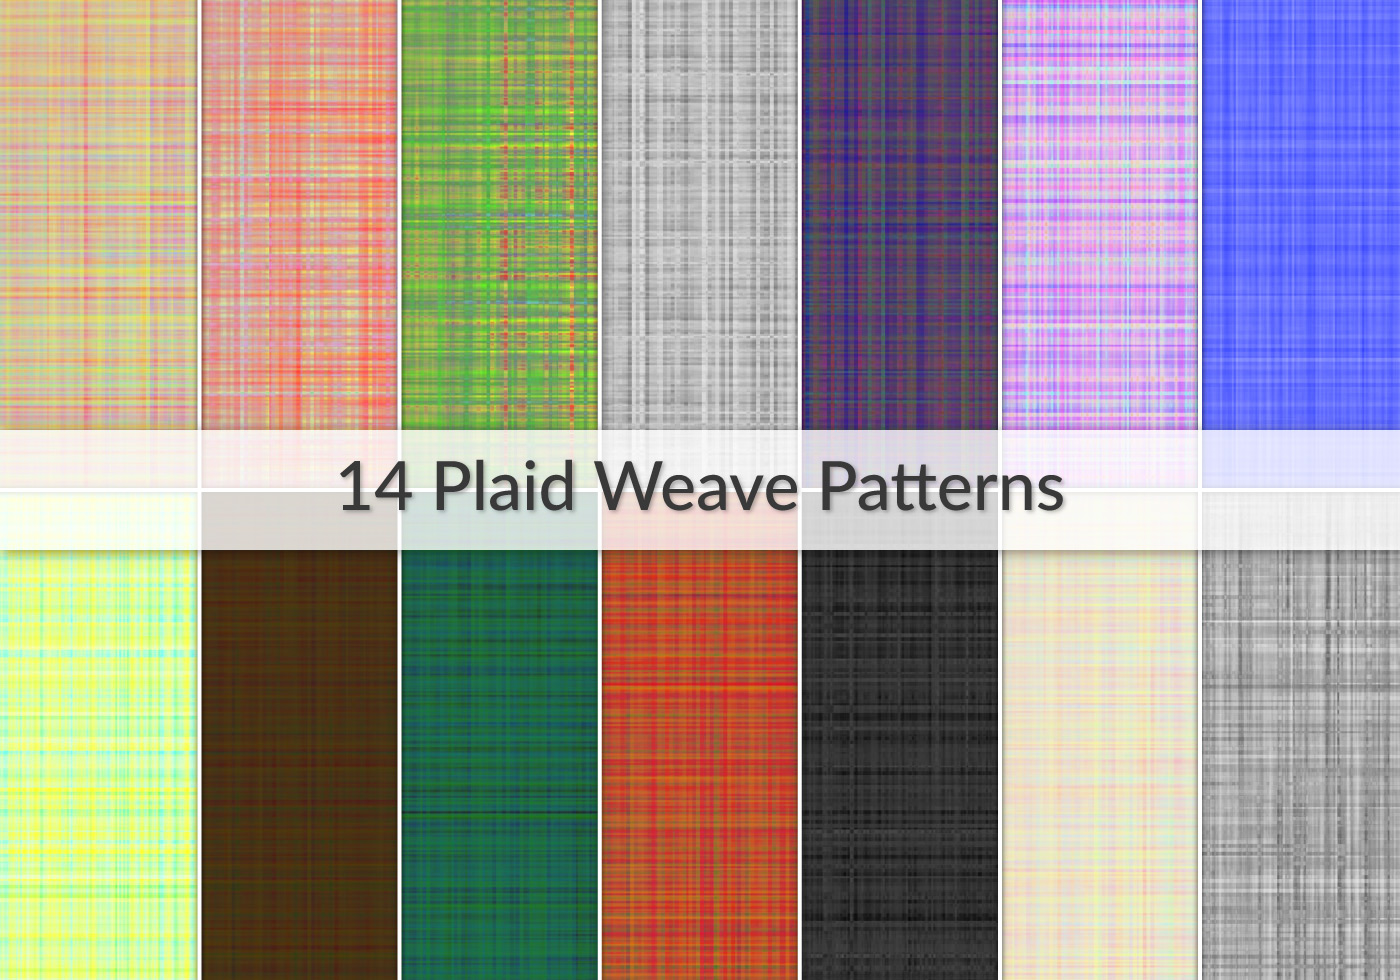 14 plaid checkered patterns free photoshop patterns at brusheezy. Black Bedroom Furniture Sets. Home Design Ideas